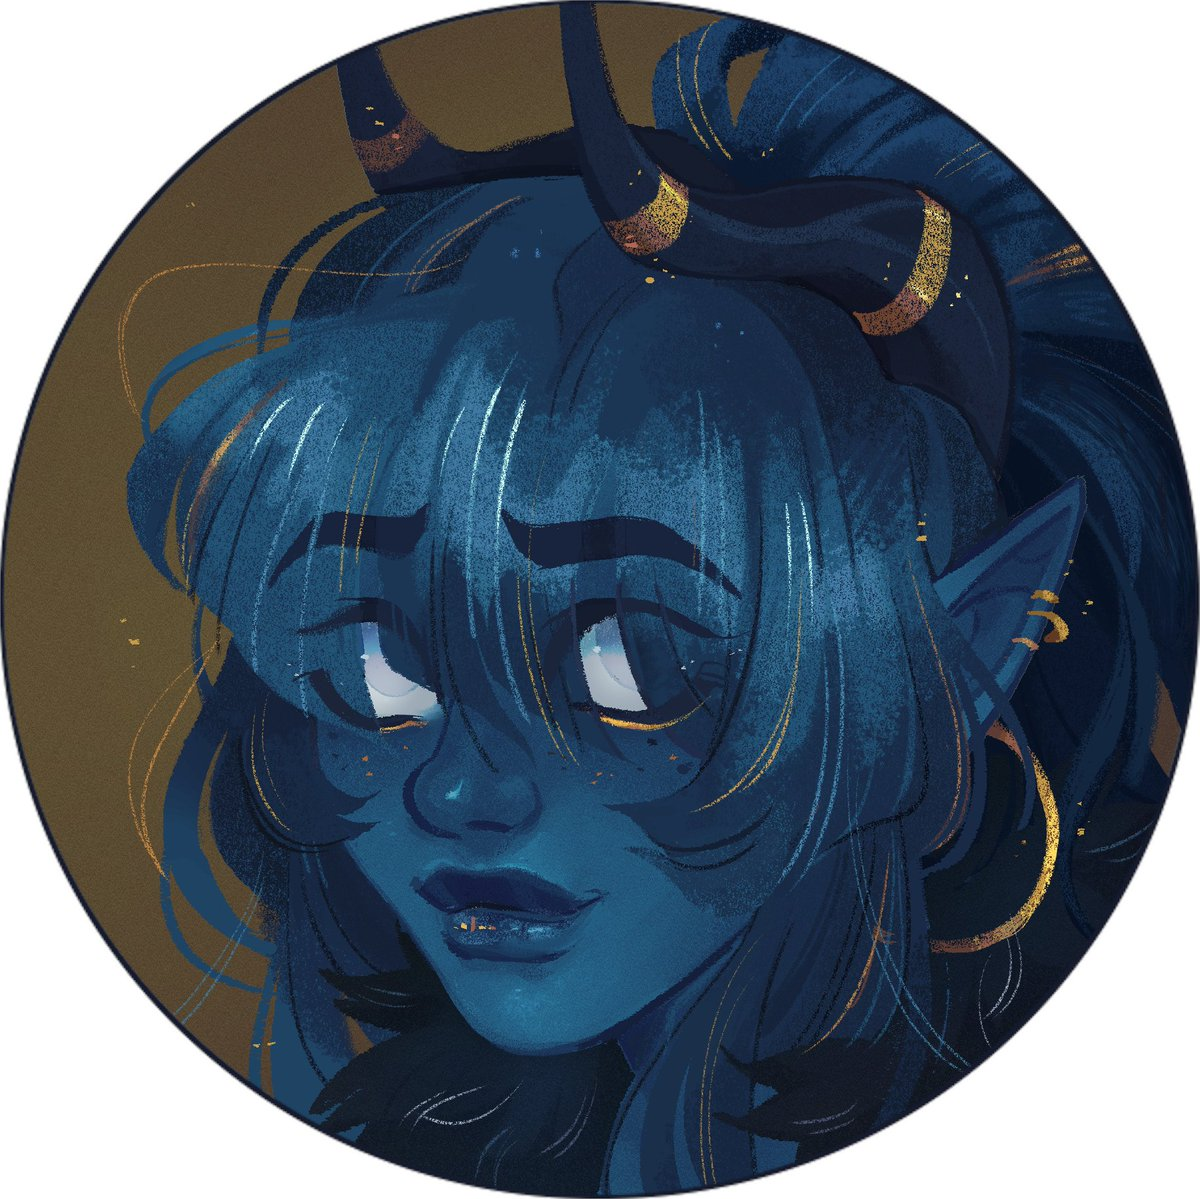 Hello is #dndartists trending??? Meet Kate, my Tiefling Warlock of the Raven Queen that I currently play in The Emerald Valley!! : ) <3   Been playing dnd for years but this campaign since june 2018!!